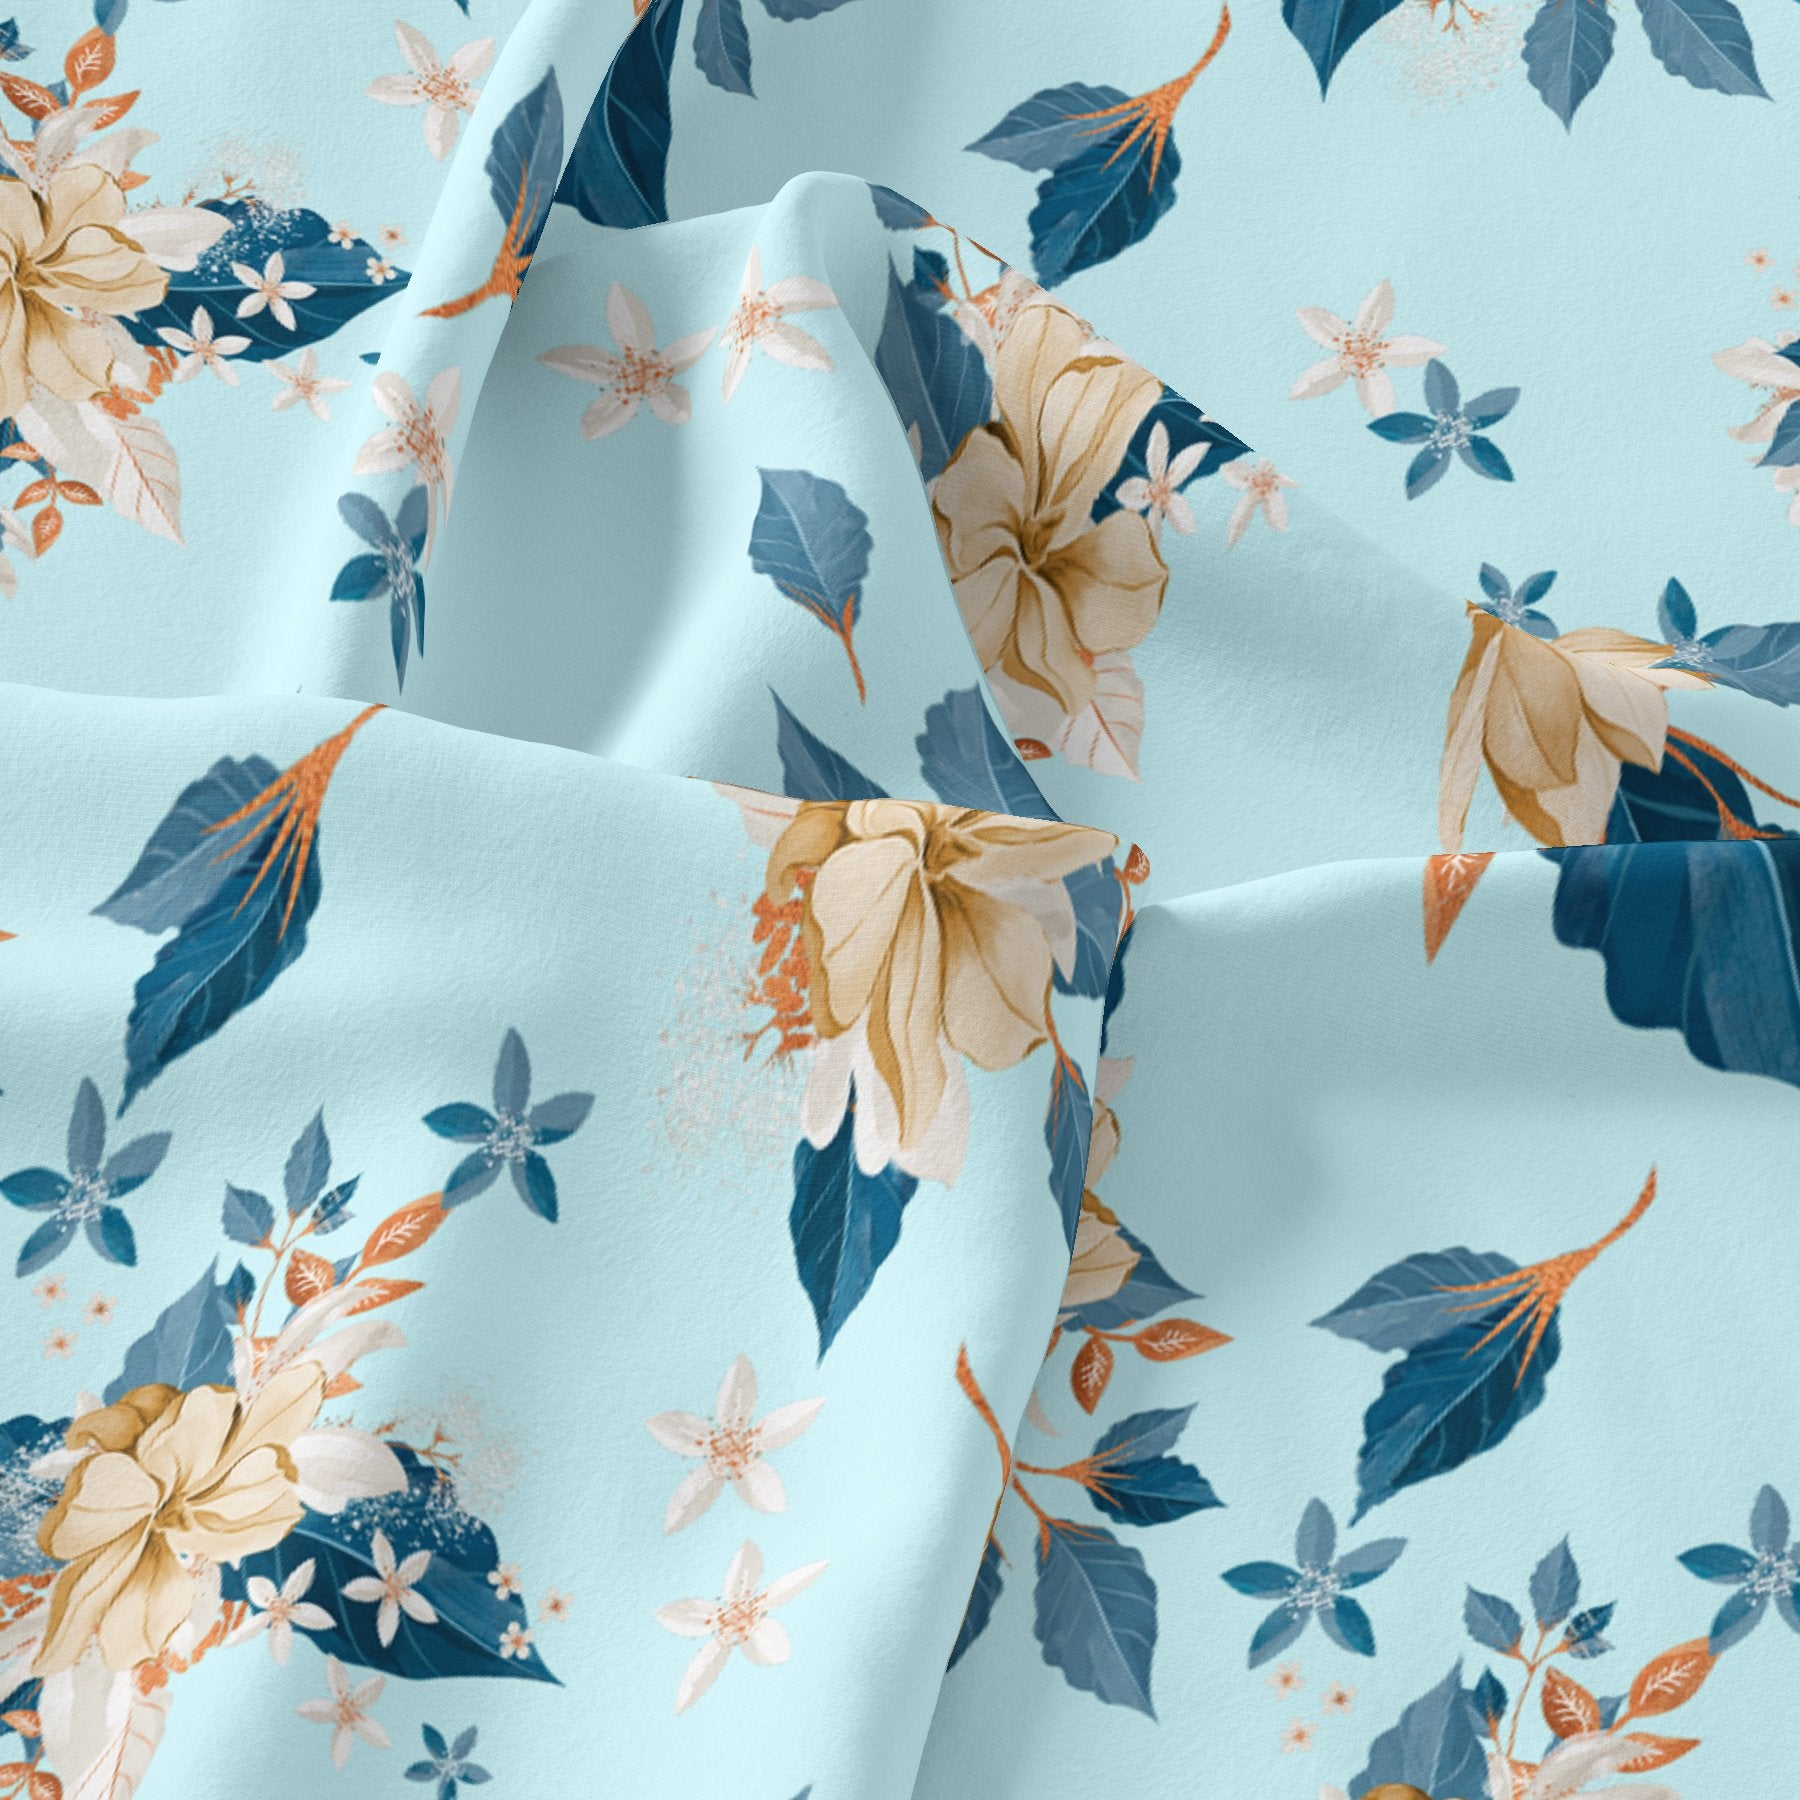 Flower On Ocean Blue Digital Printed Fabric - Pure Georgette - FAB VOGUE Studio